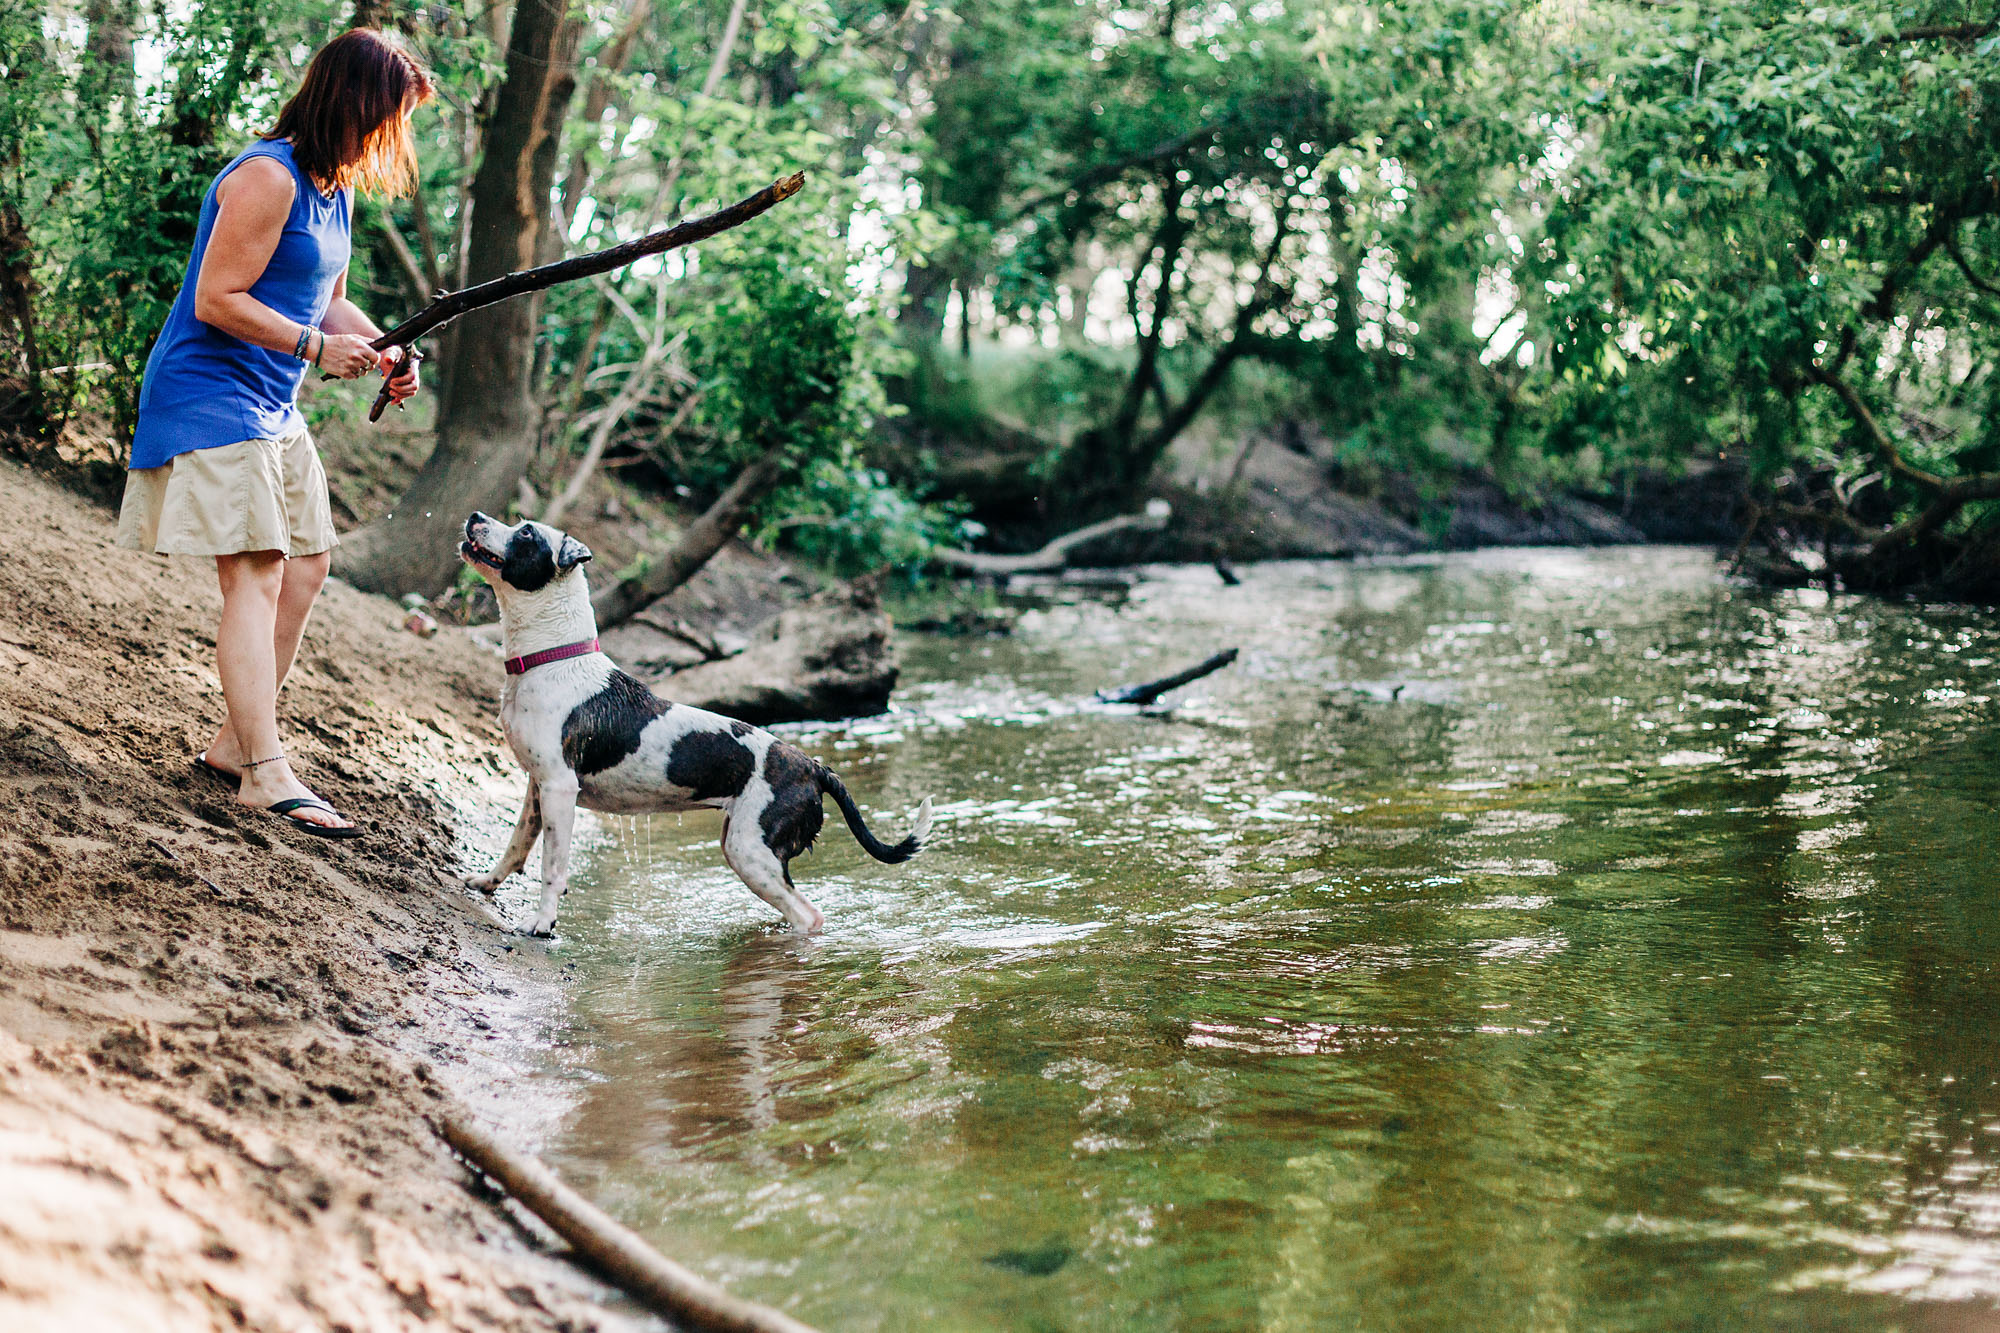 A woman plays with her dog at a local Roseville, CA creek during a family photography session with photographer AMy Wright